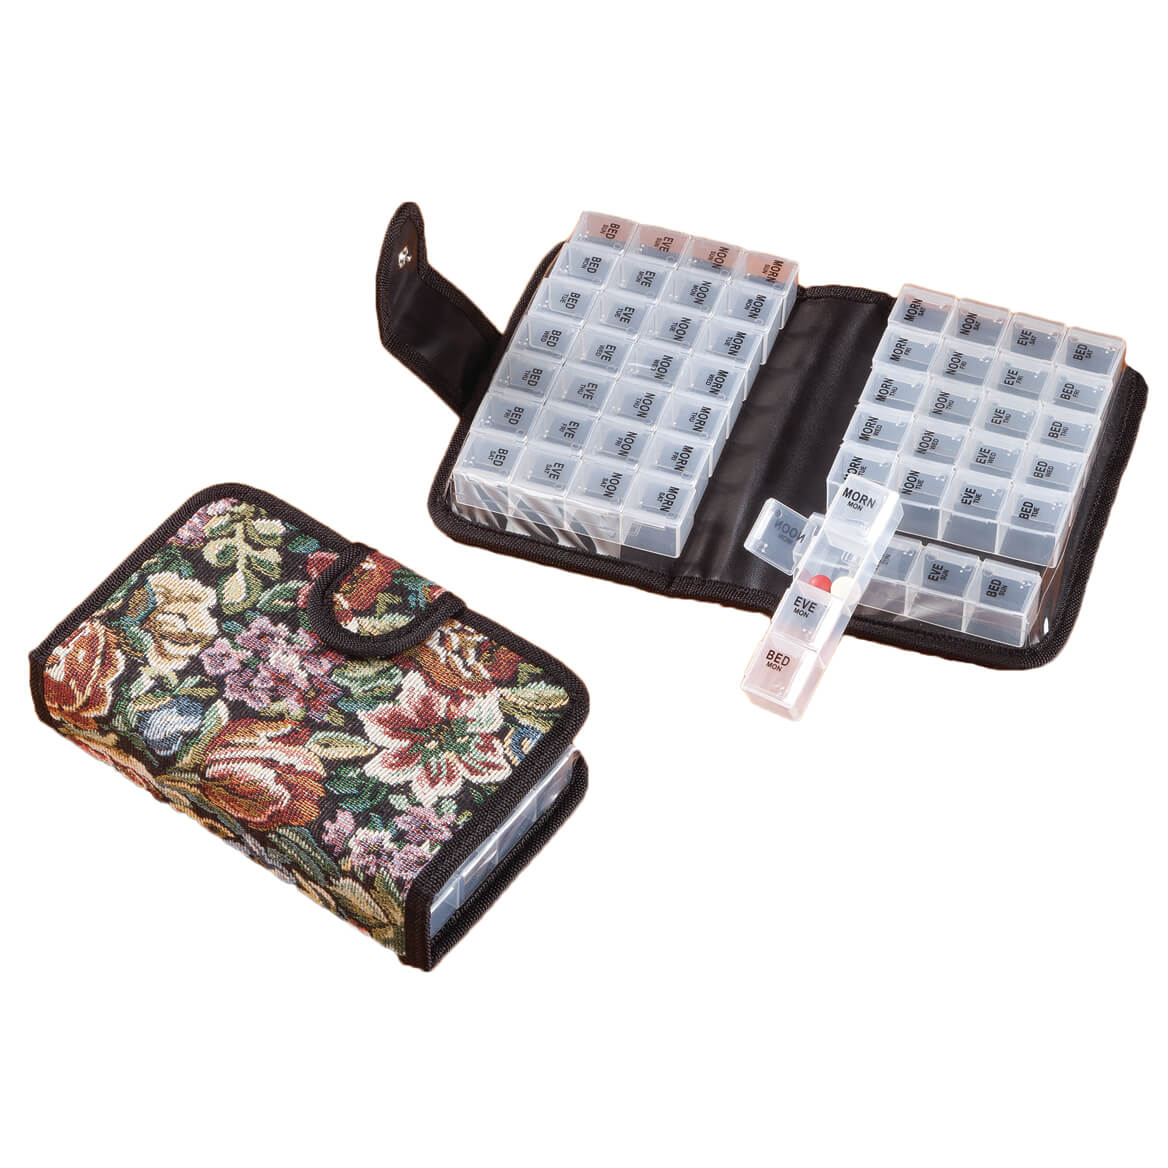 14 Day Pill Holder - 2 Week Pill Organizer - Walter Drake